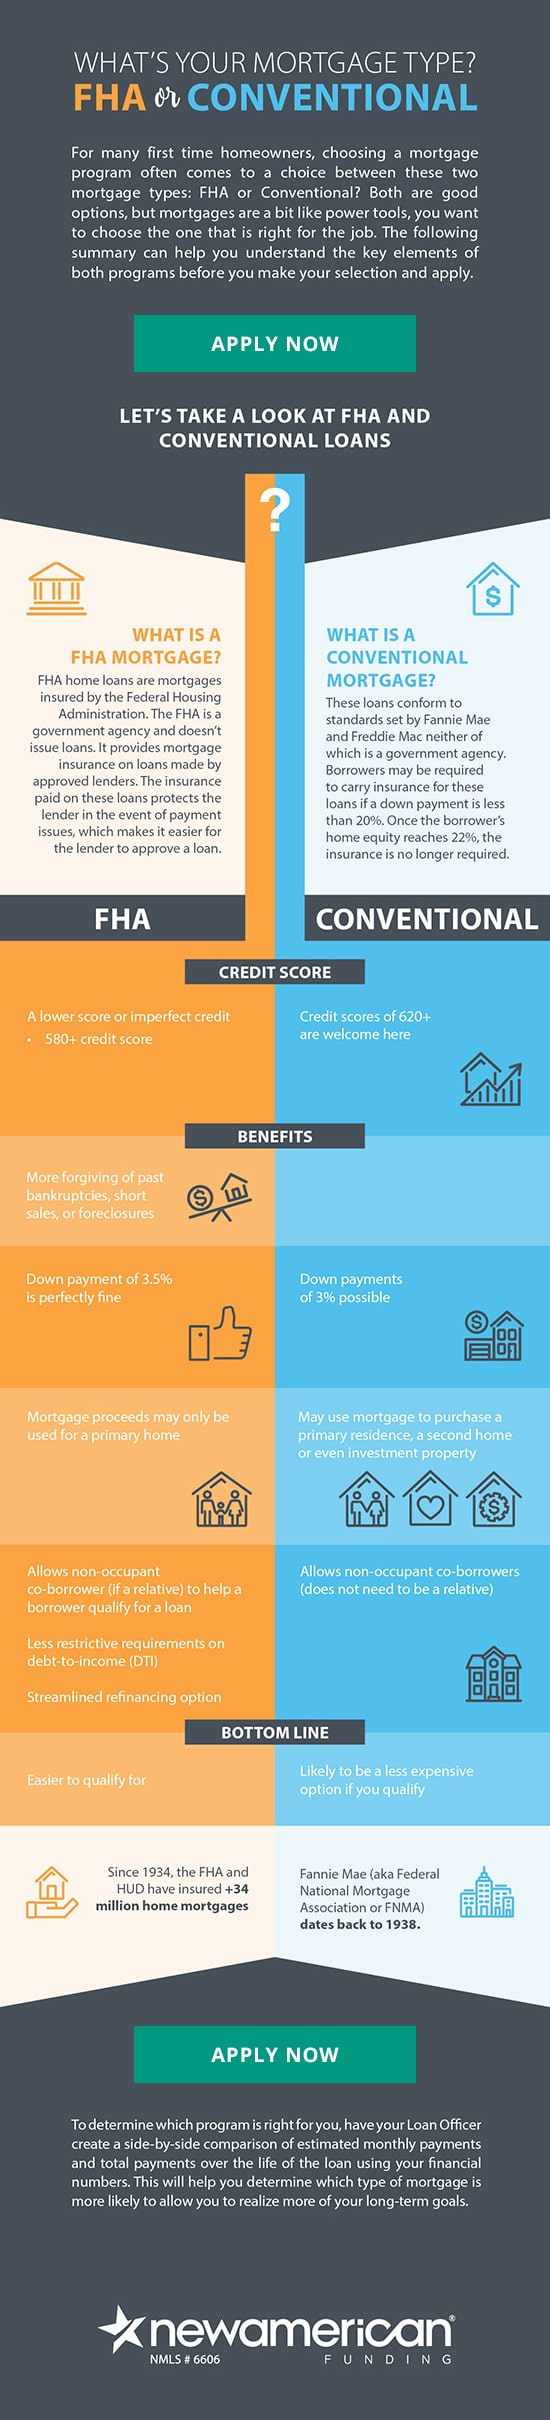 FHA vs. Conventional Loan Comparisoin Infographic